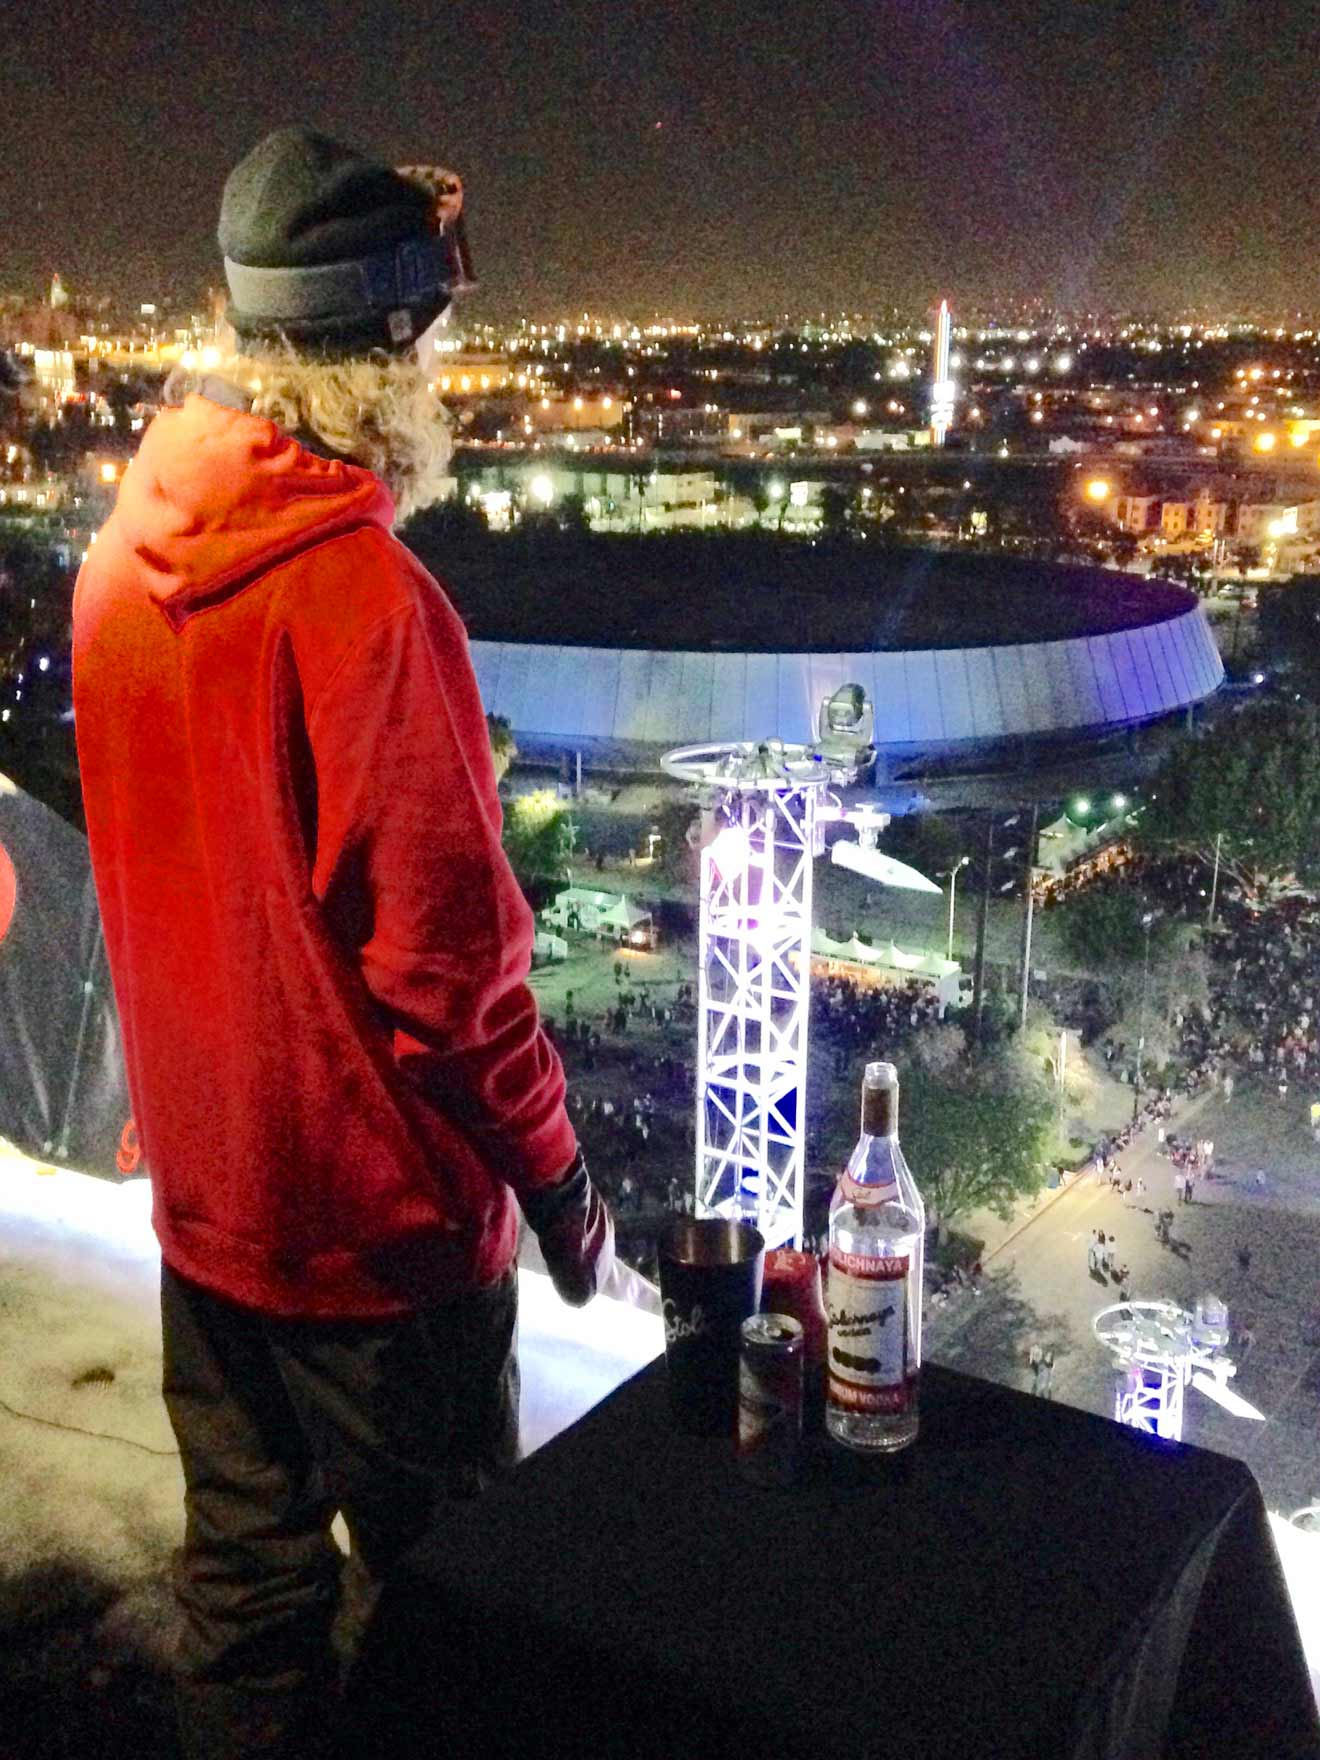 Eric Willett at the Top of the Mega Ramp, industry news